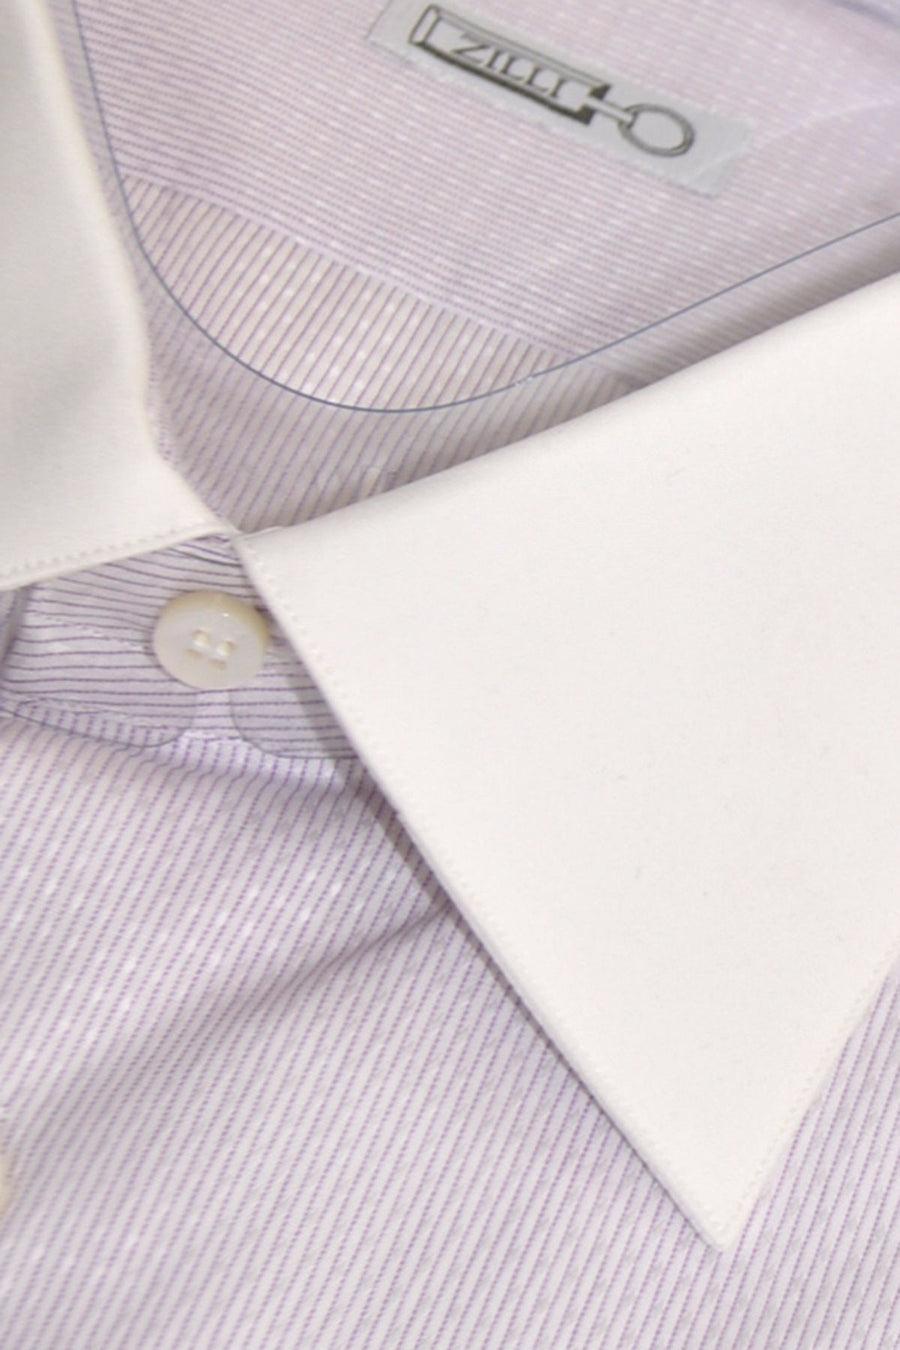 Zilli Dress Shirt White Purple Stripes